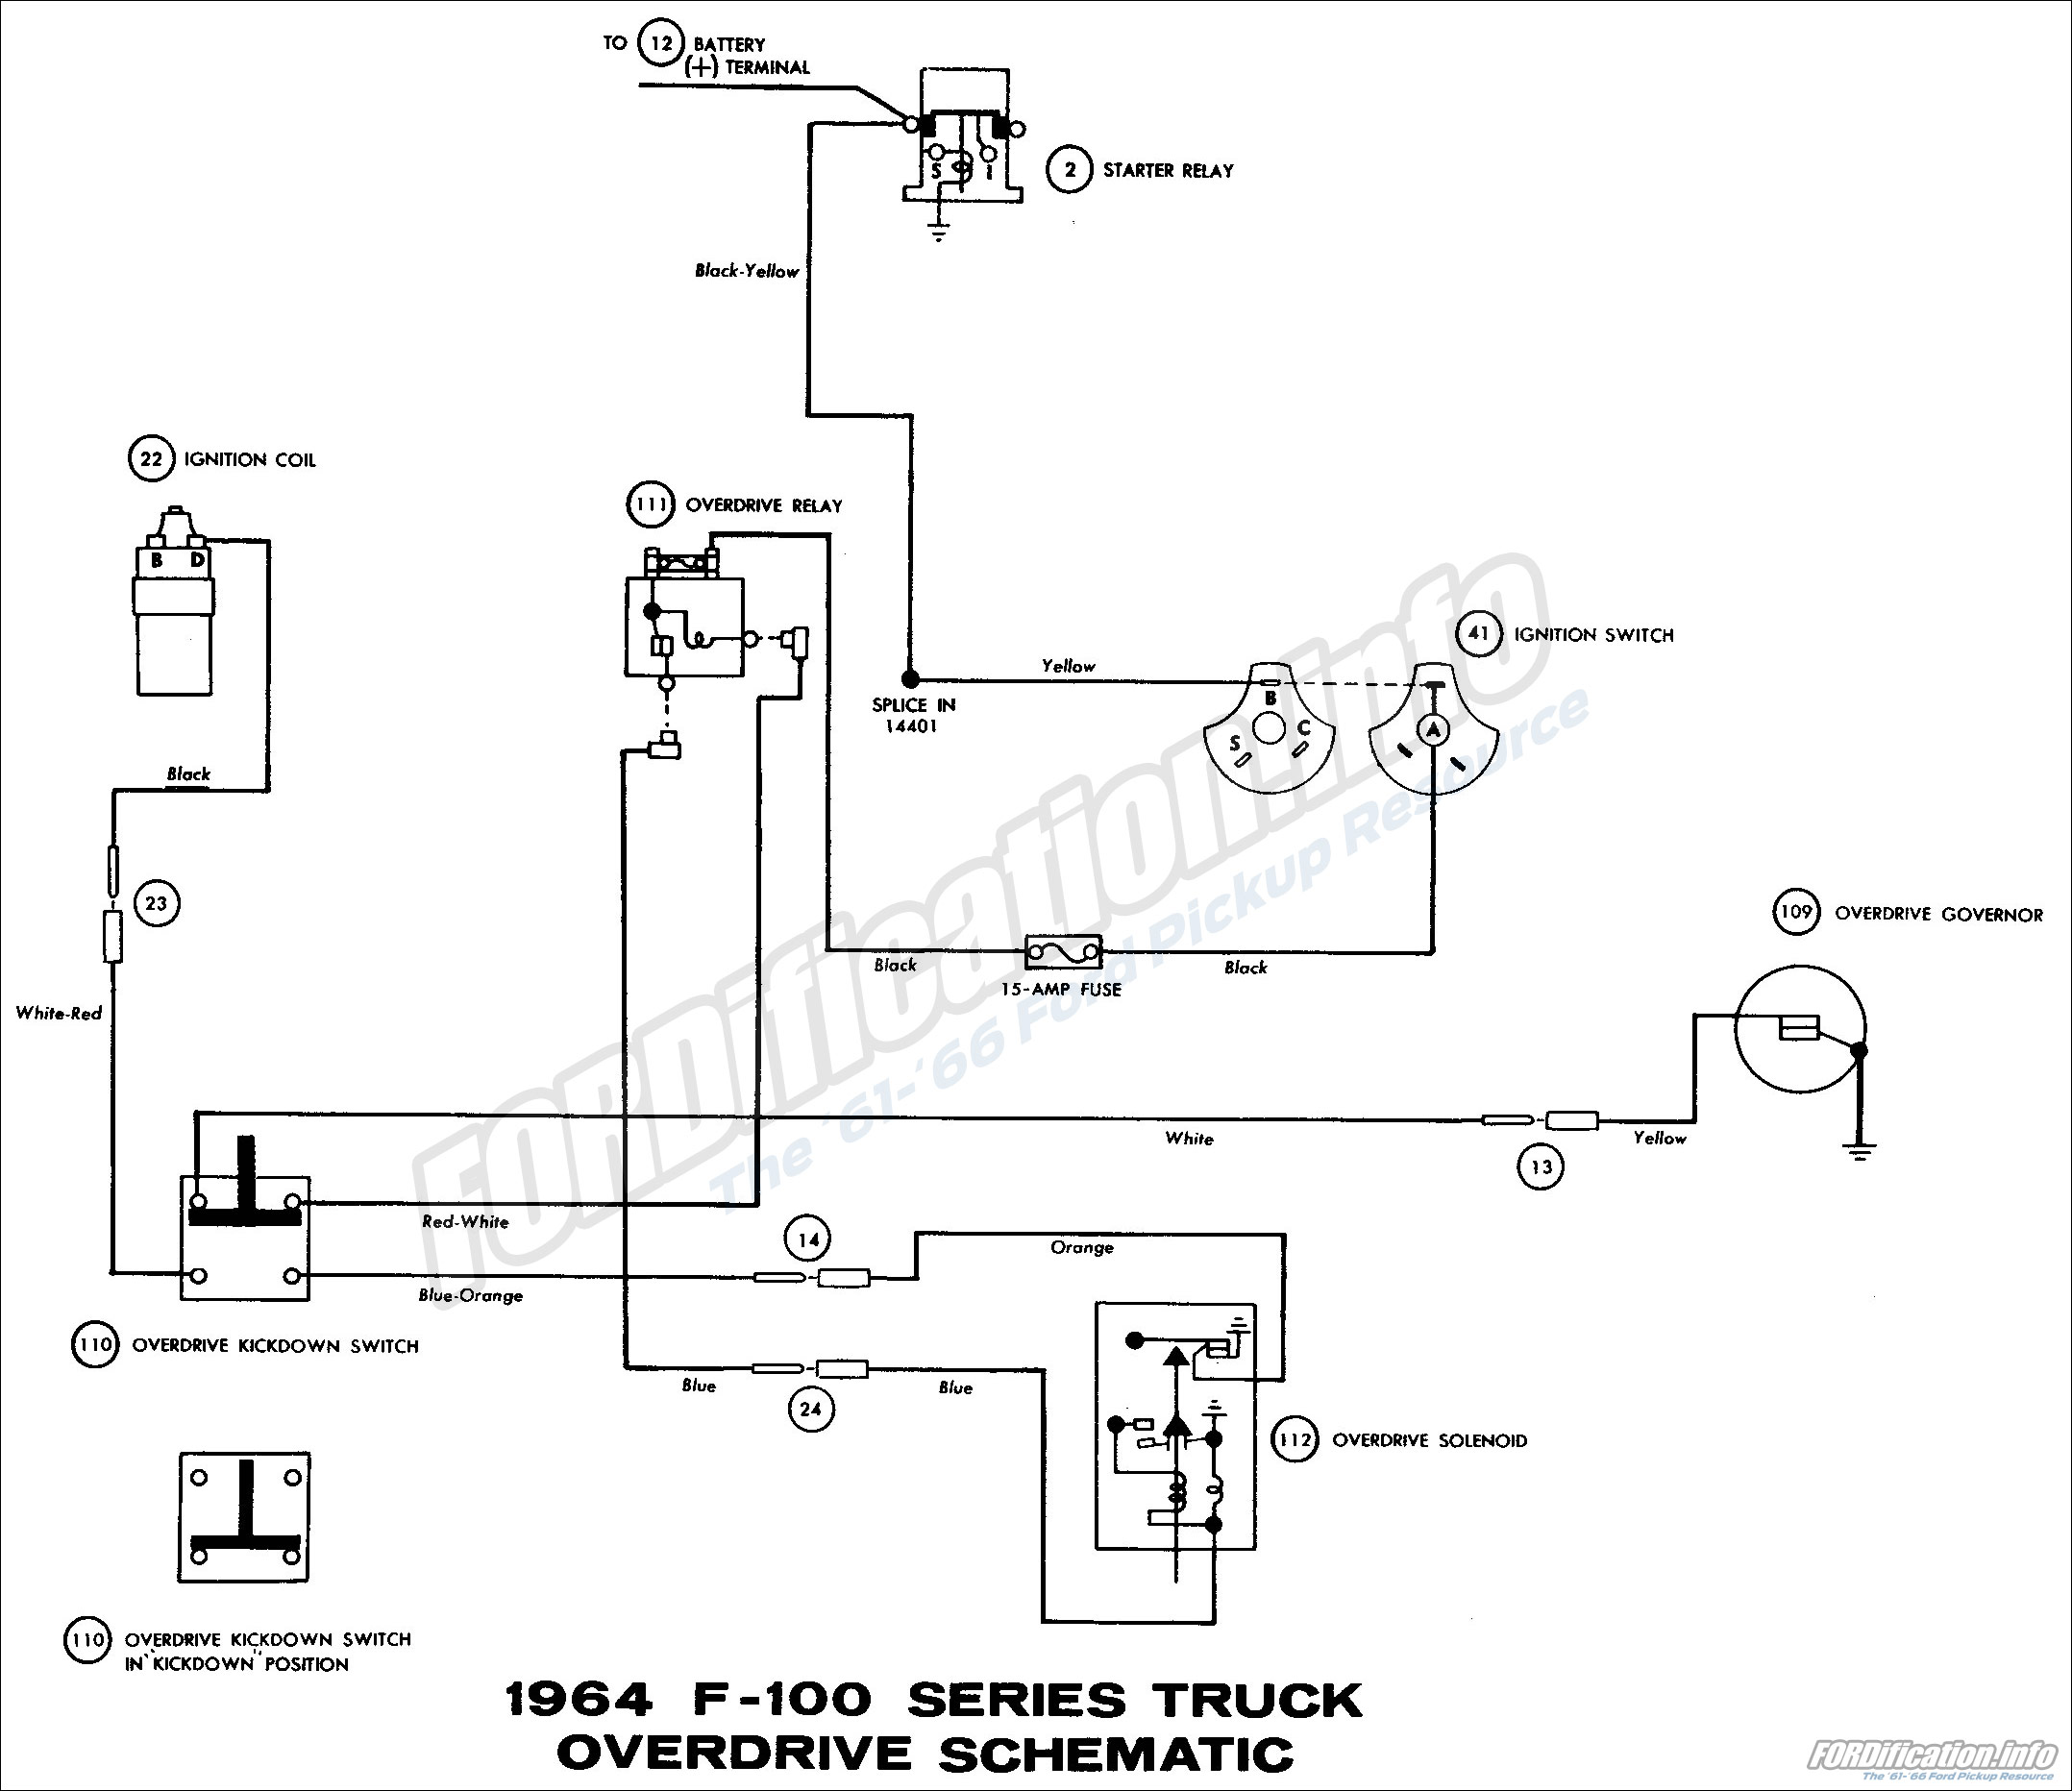 1964 Ford Truck Wiring Diagrams Fordification Info The '61 '66 1963 Ford  Falcon Wiring-Diagram 1964 Ford Wiring Diagram